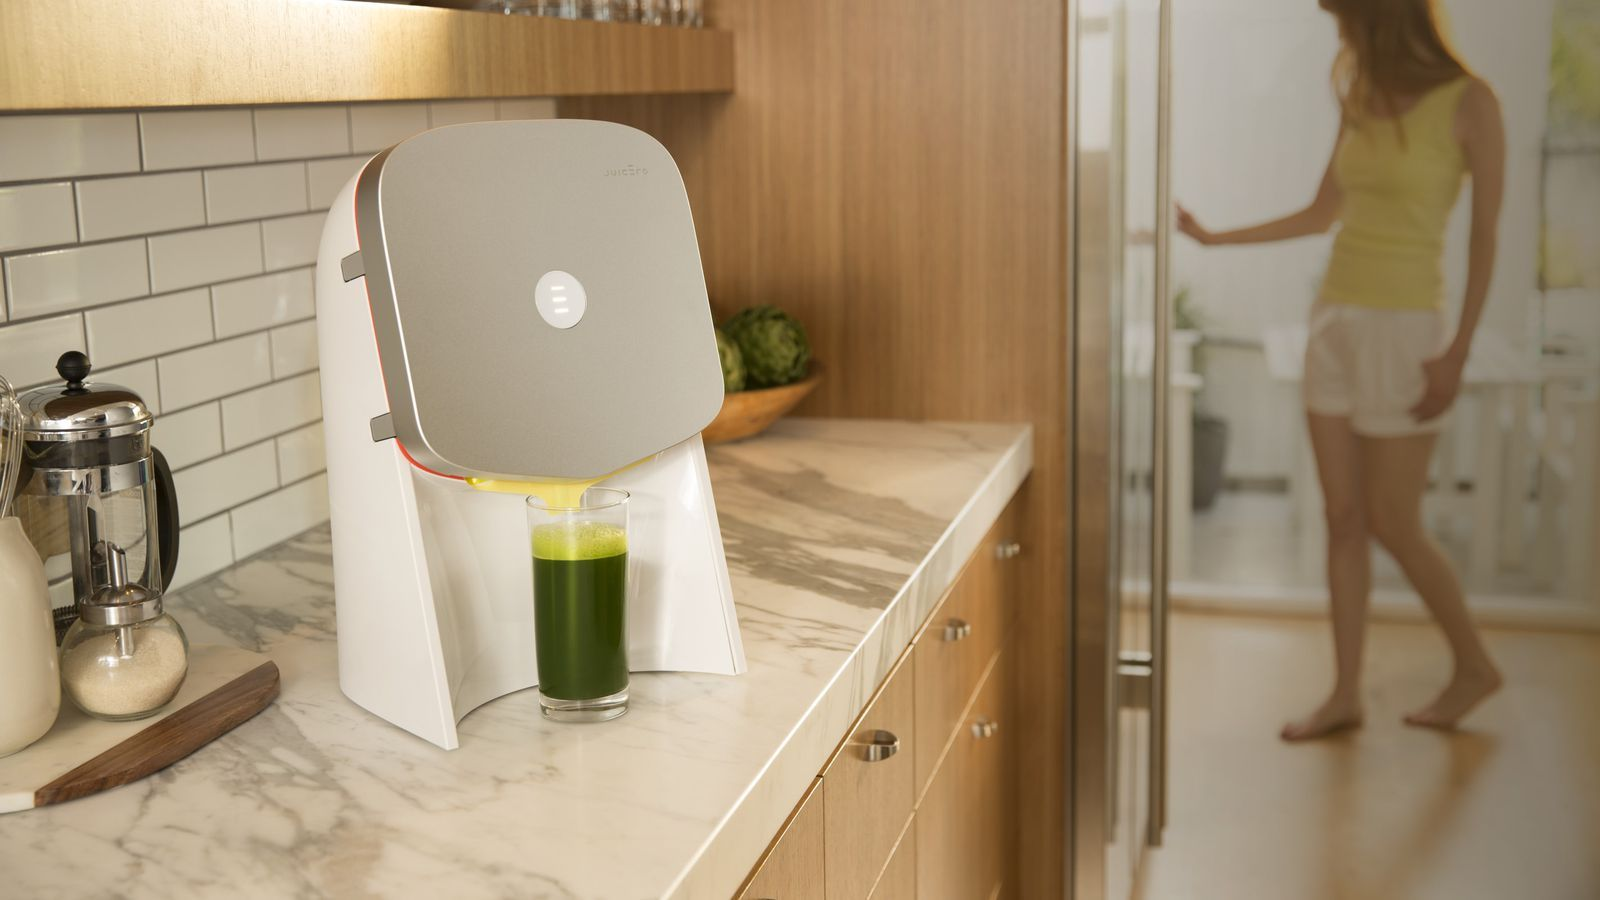 Juicero offering refunds to all customers after people realize $400 juicer is totally unnecessary